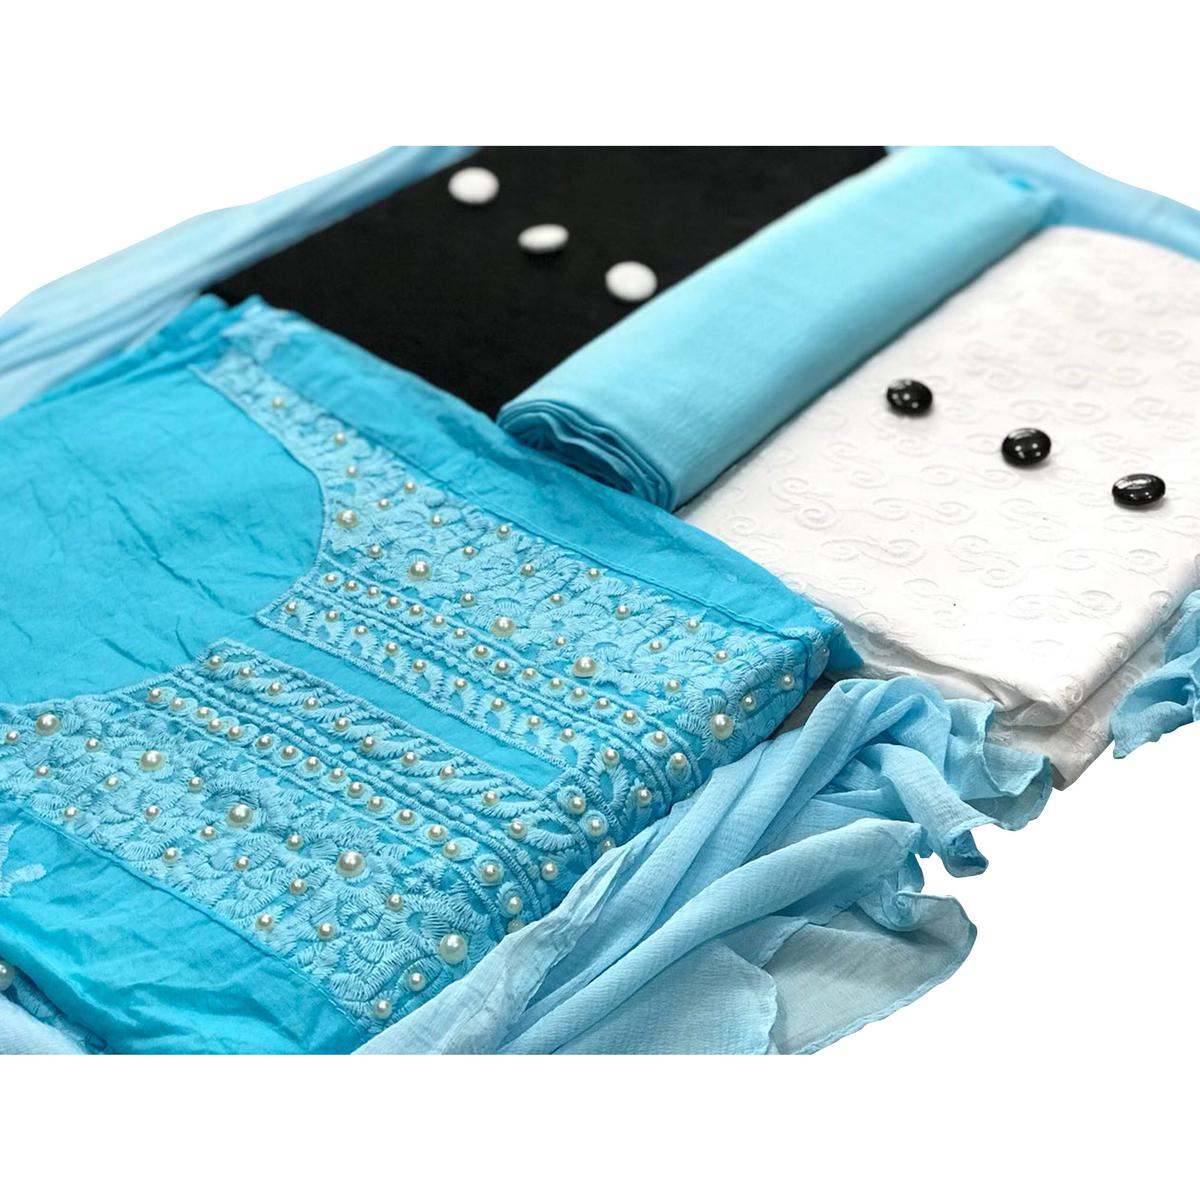 Modal-Cotton Dress Material : Pack Of 3 Tops (Sky Blue-Black-White) With 1 Bottom & Dupatta